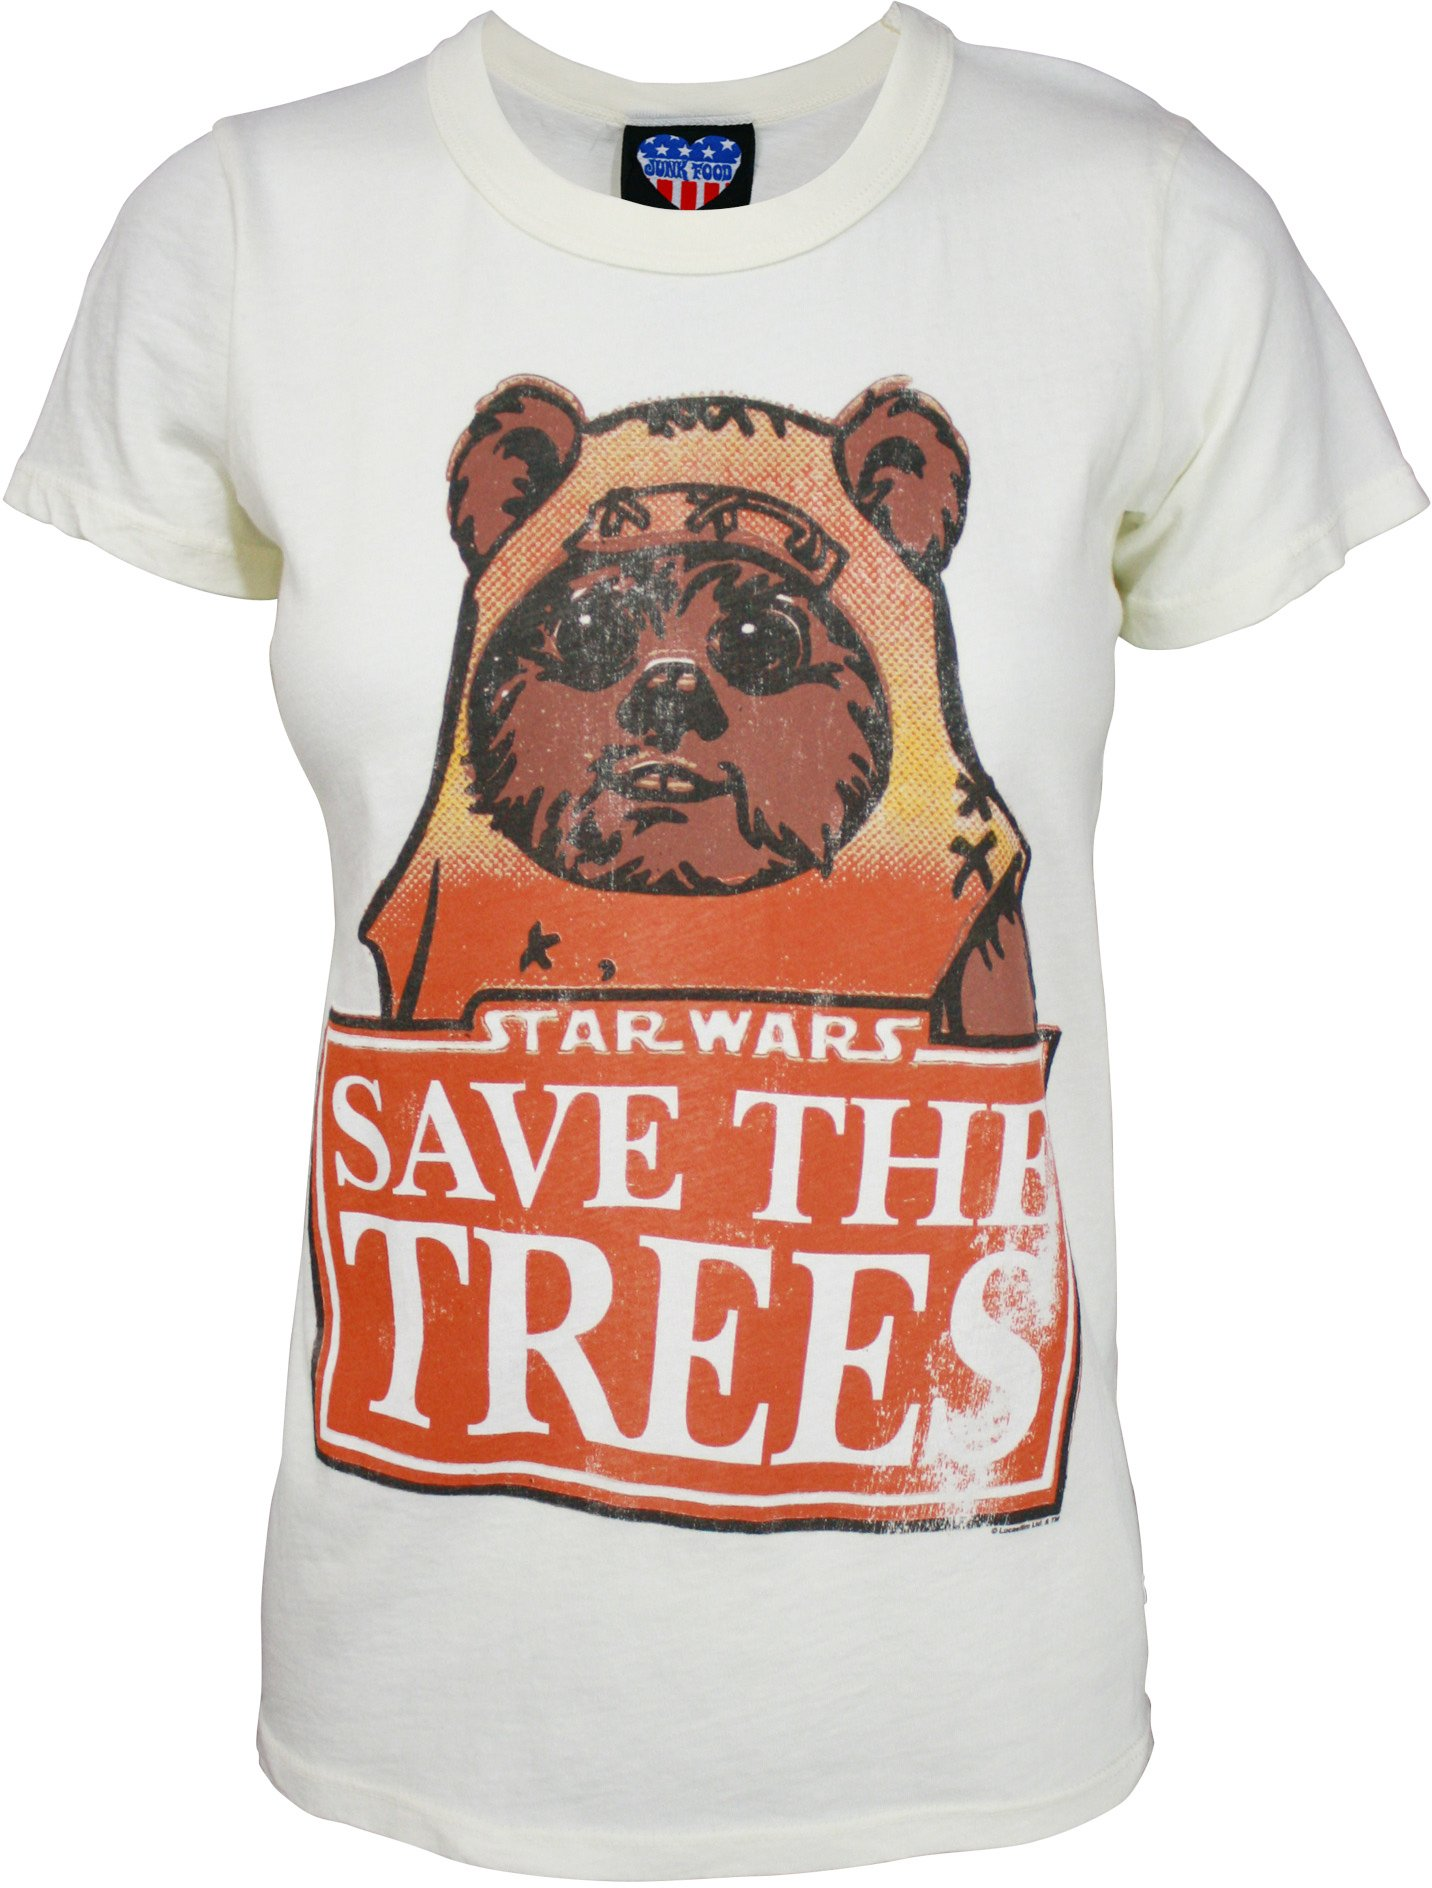 Ewok Save the Trees T-Shirt Ivory